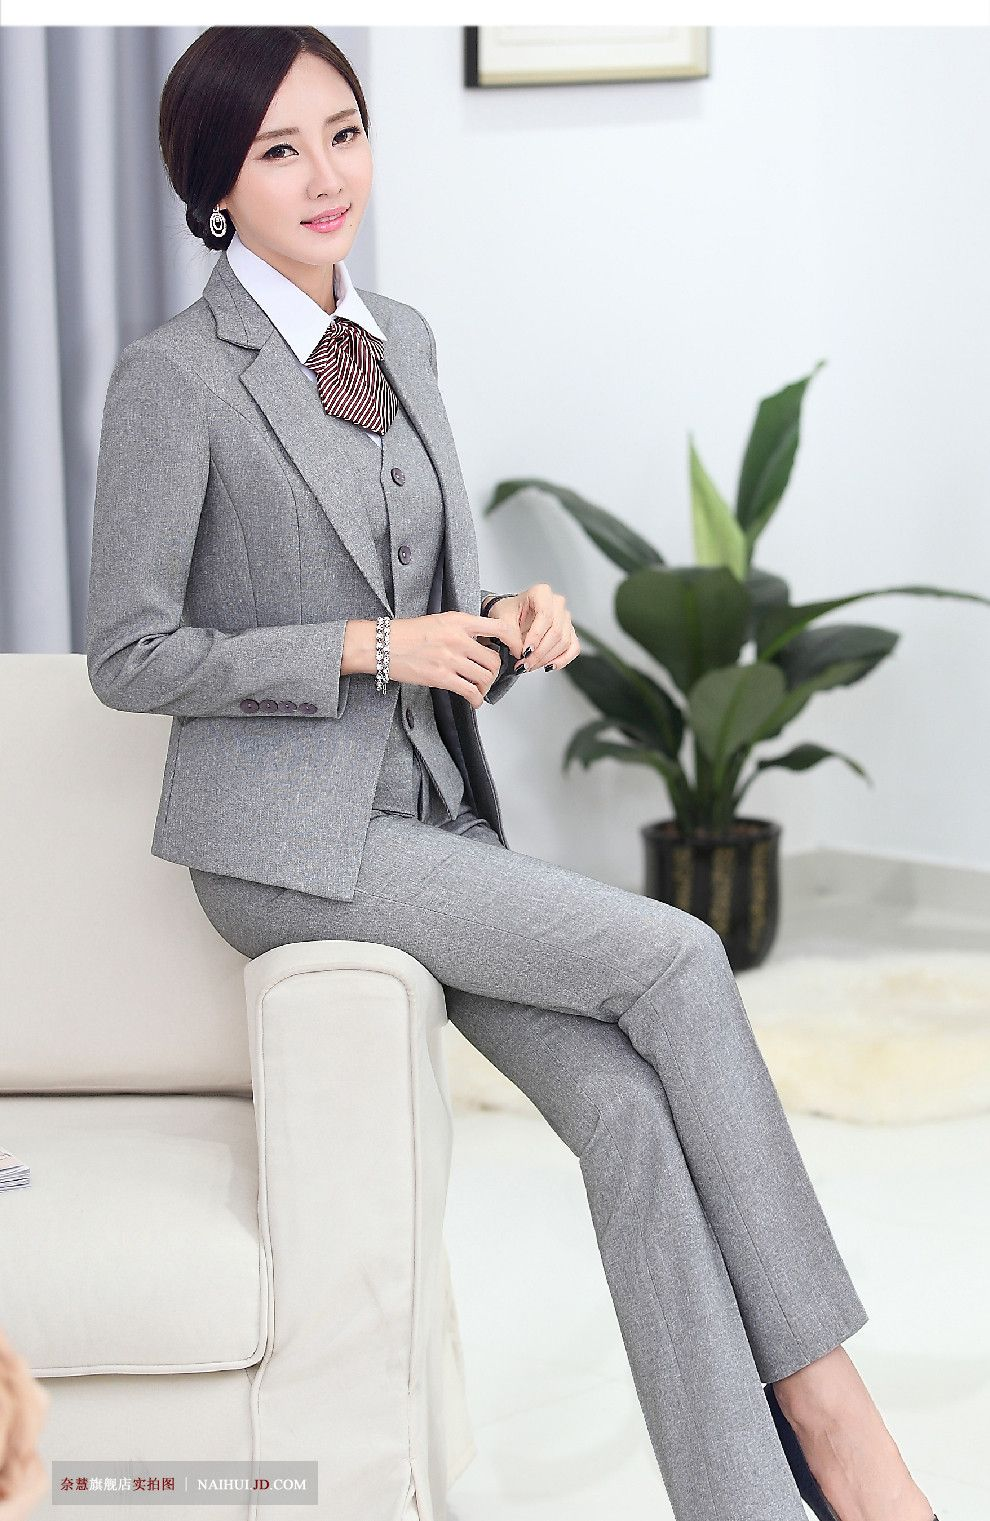 Jacket+pants+vest Black Plaid Womens Business Suits Design Slim Fit Office Uniform Style Female Trouser Suits 3 Piece Set Suits & Sets